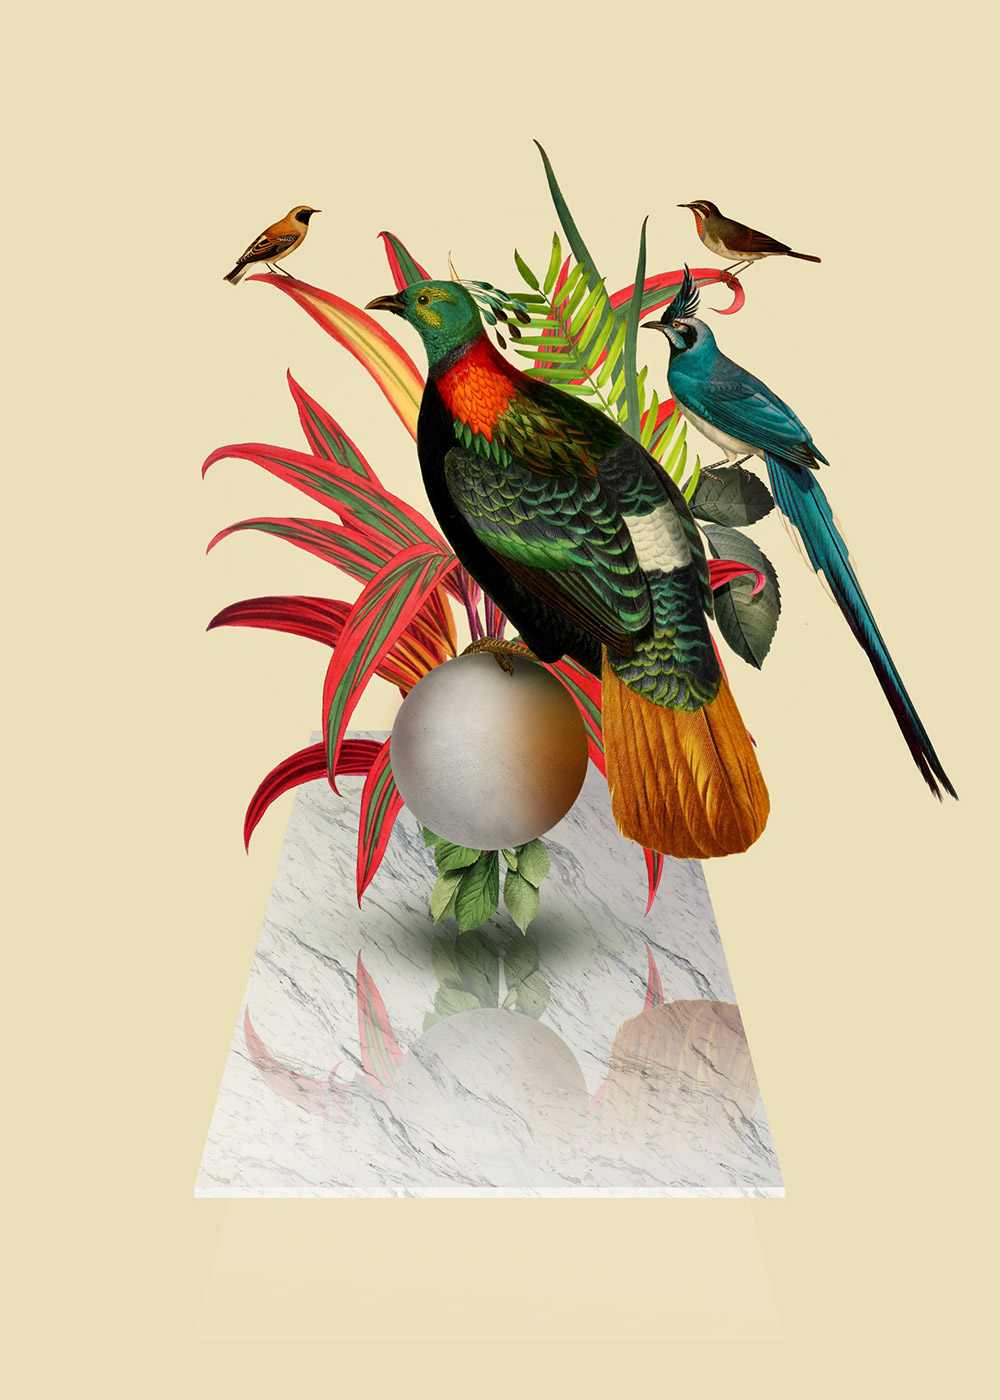 Surreal Digital Collages by Orbeh